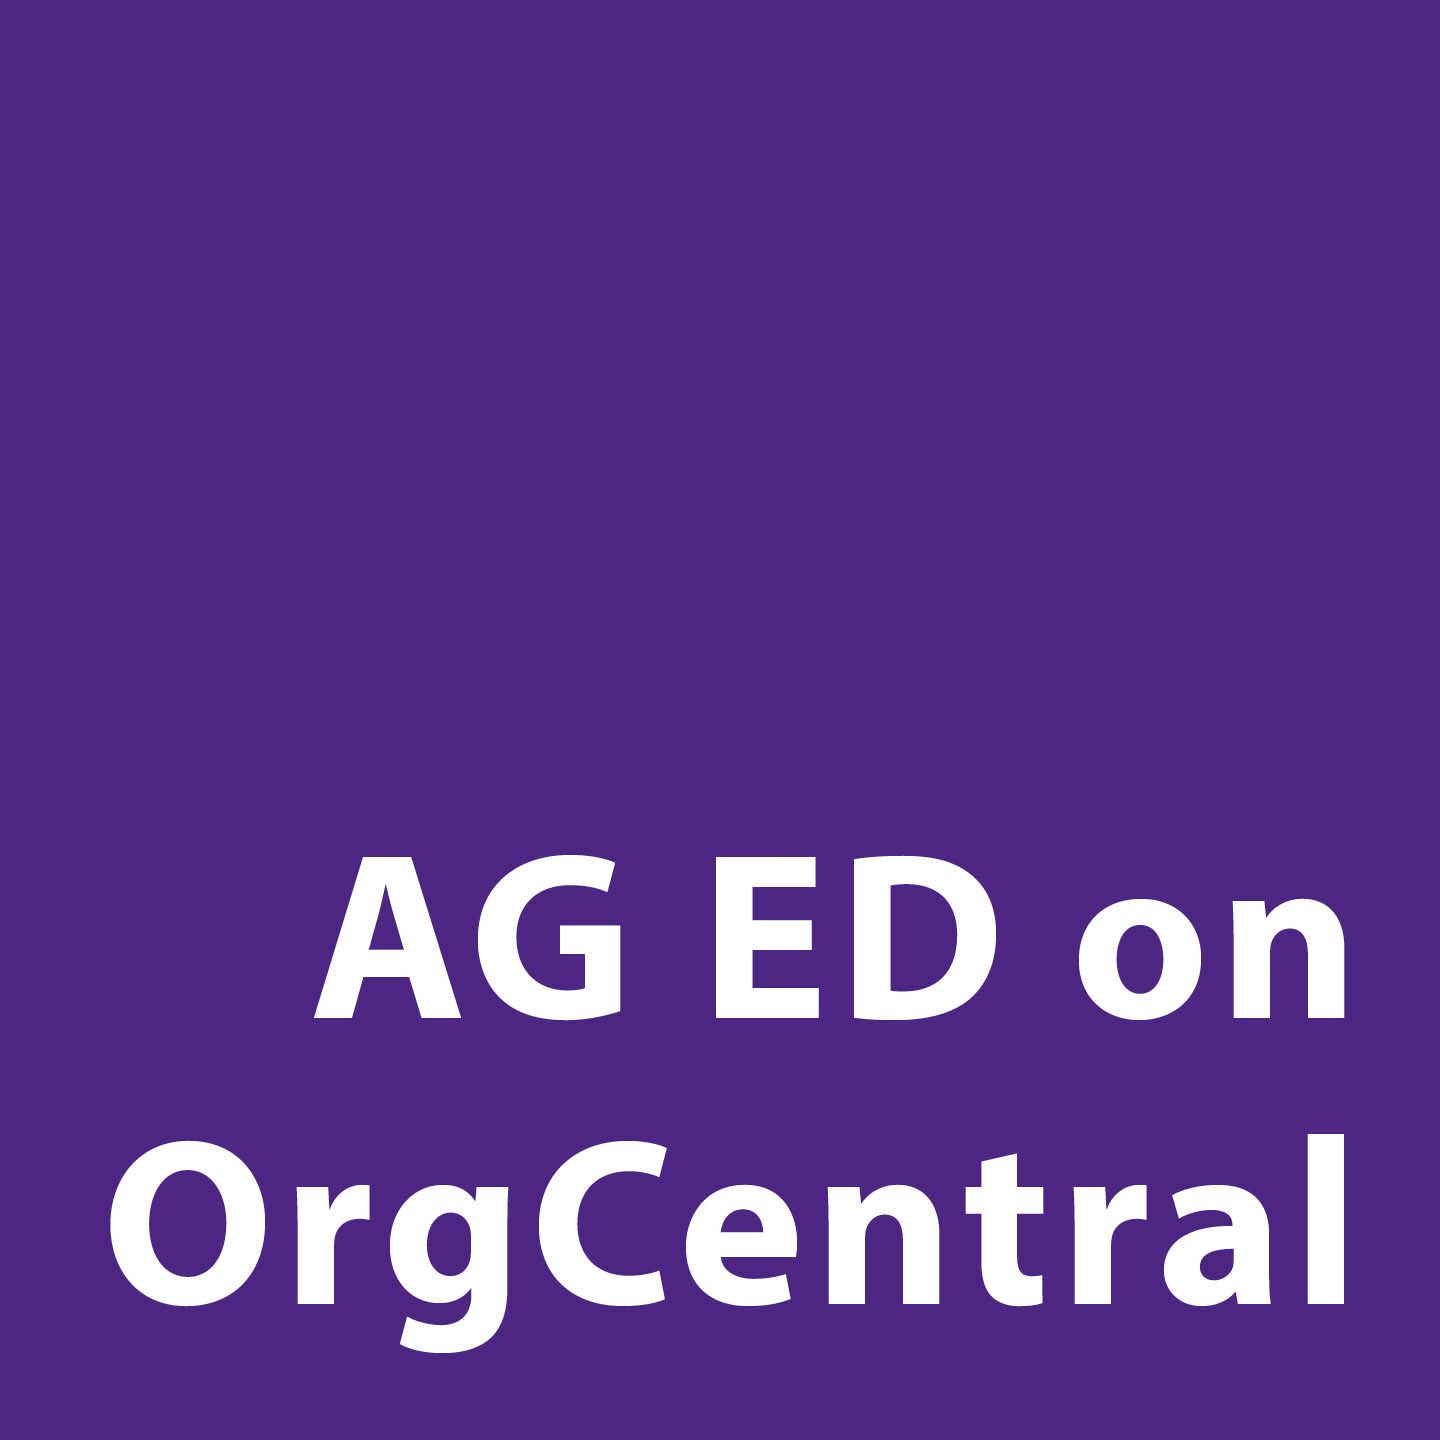 Ag Ed on Org Central